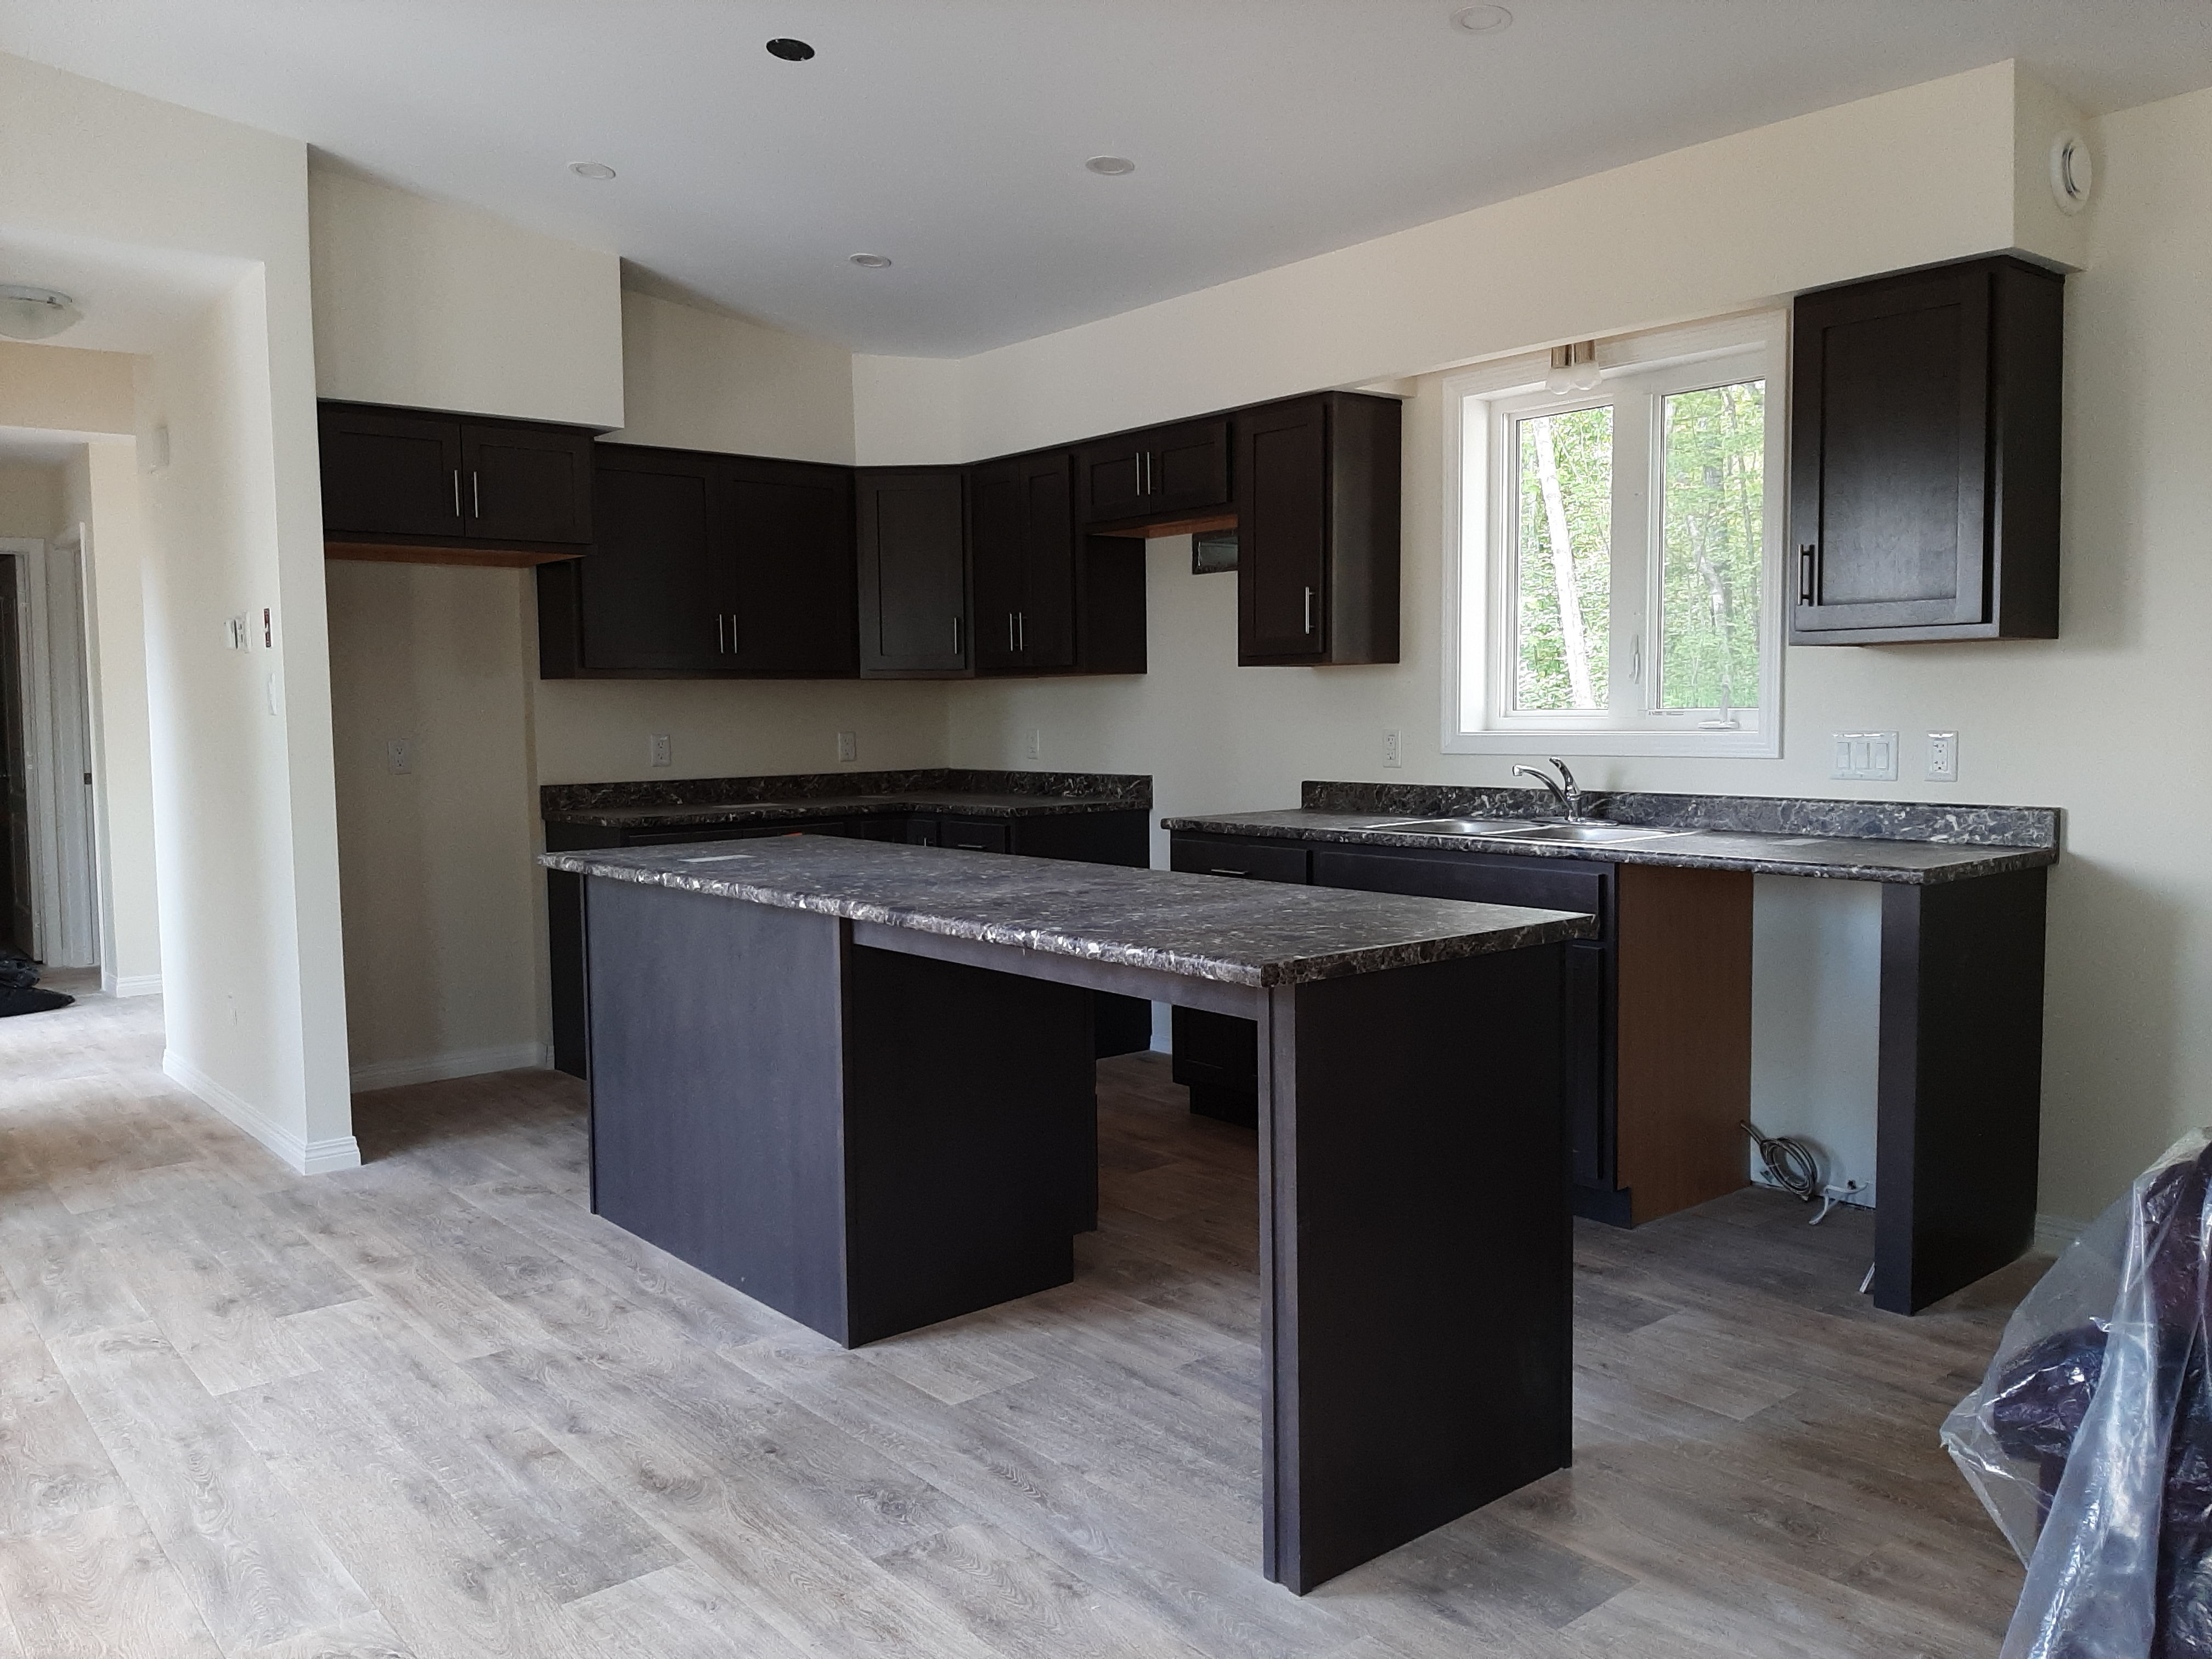 Inside the home, kitchen island